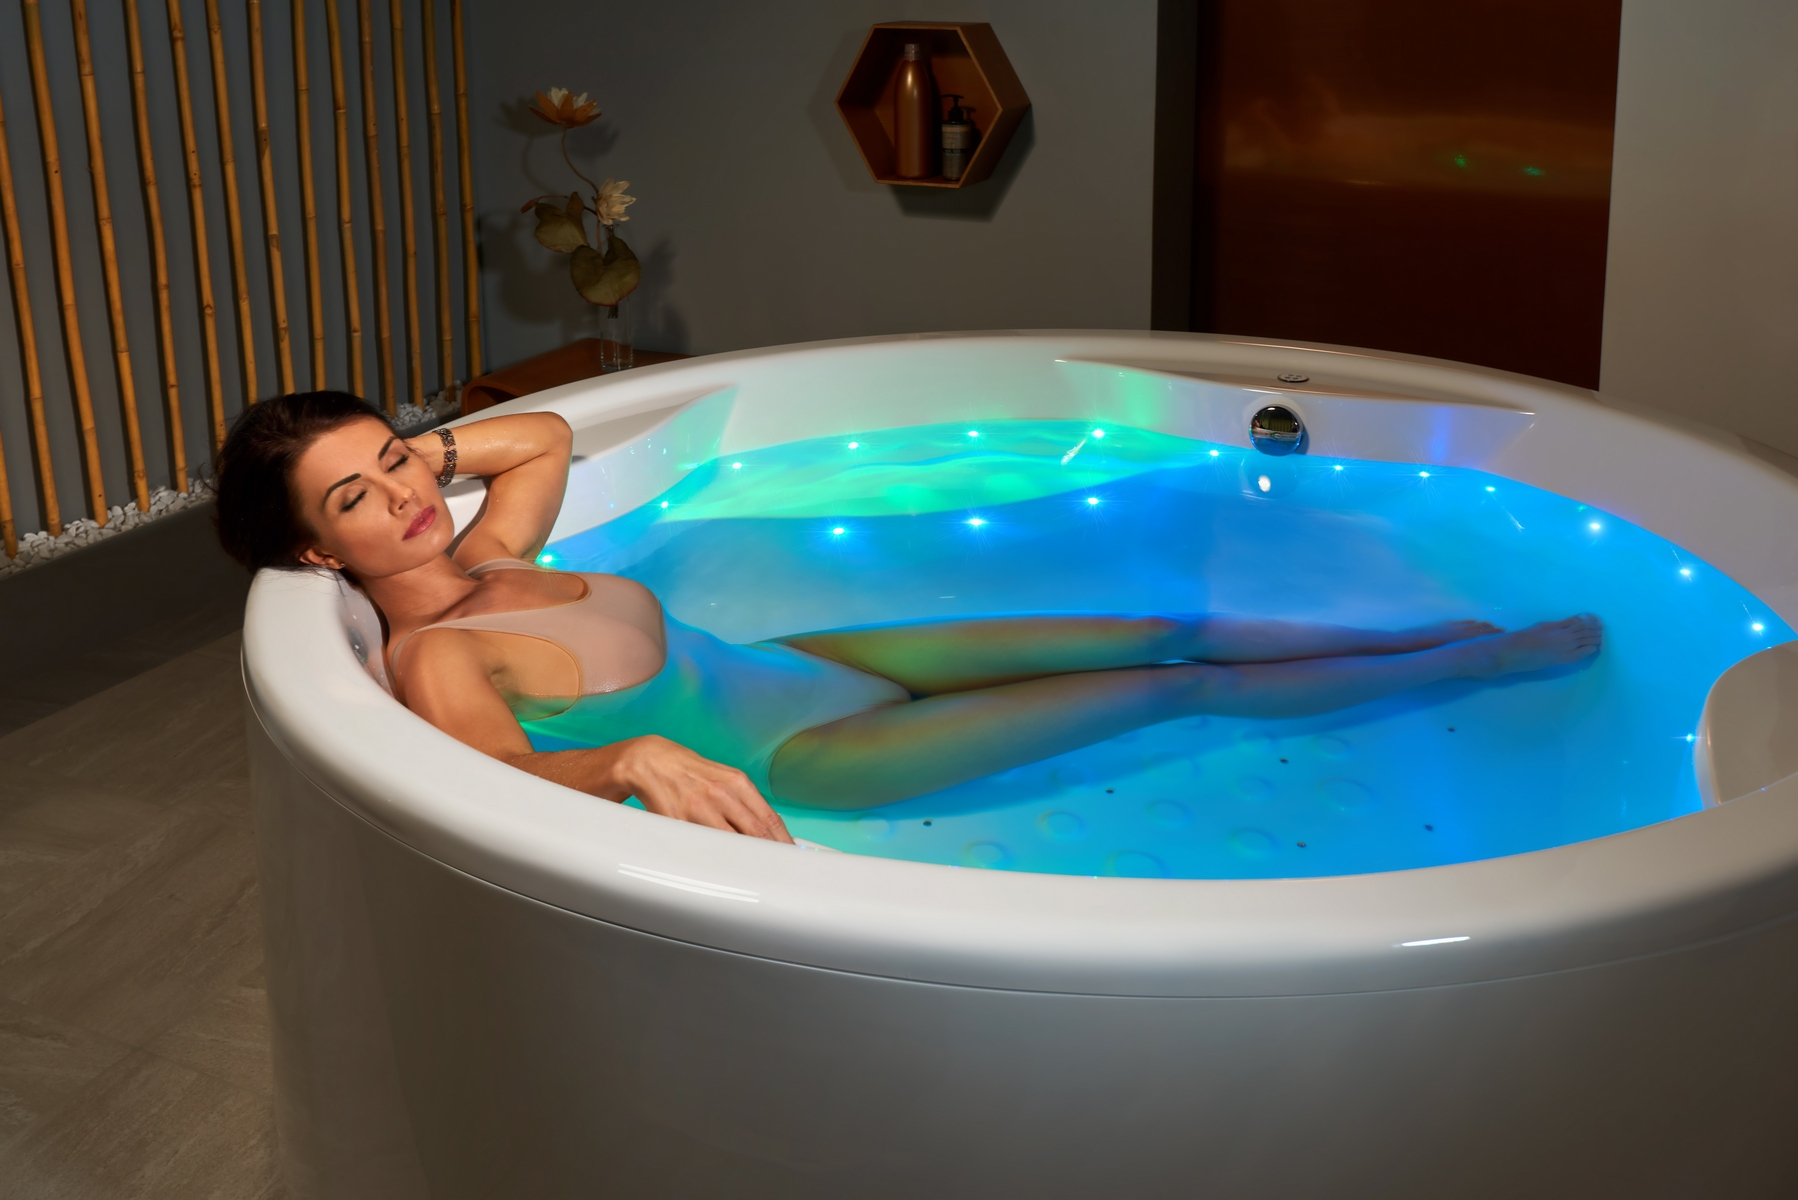 aquatica allegra wht relax air massage bathtub web3 - Bathtub